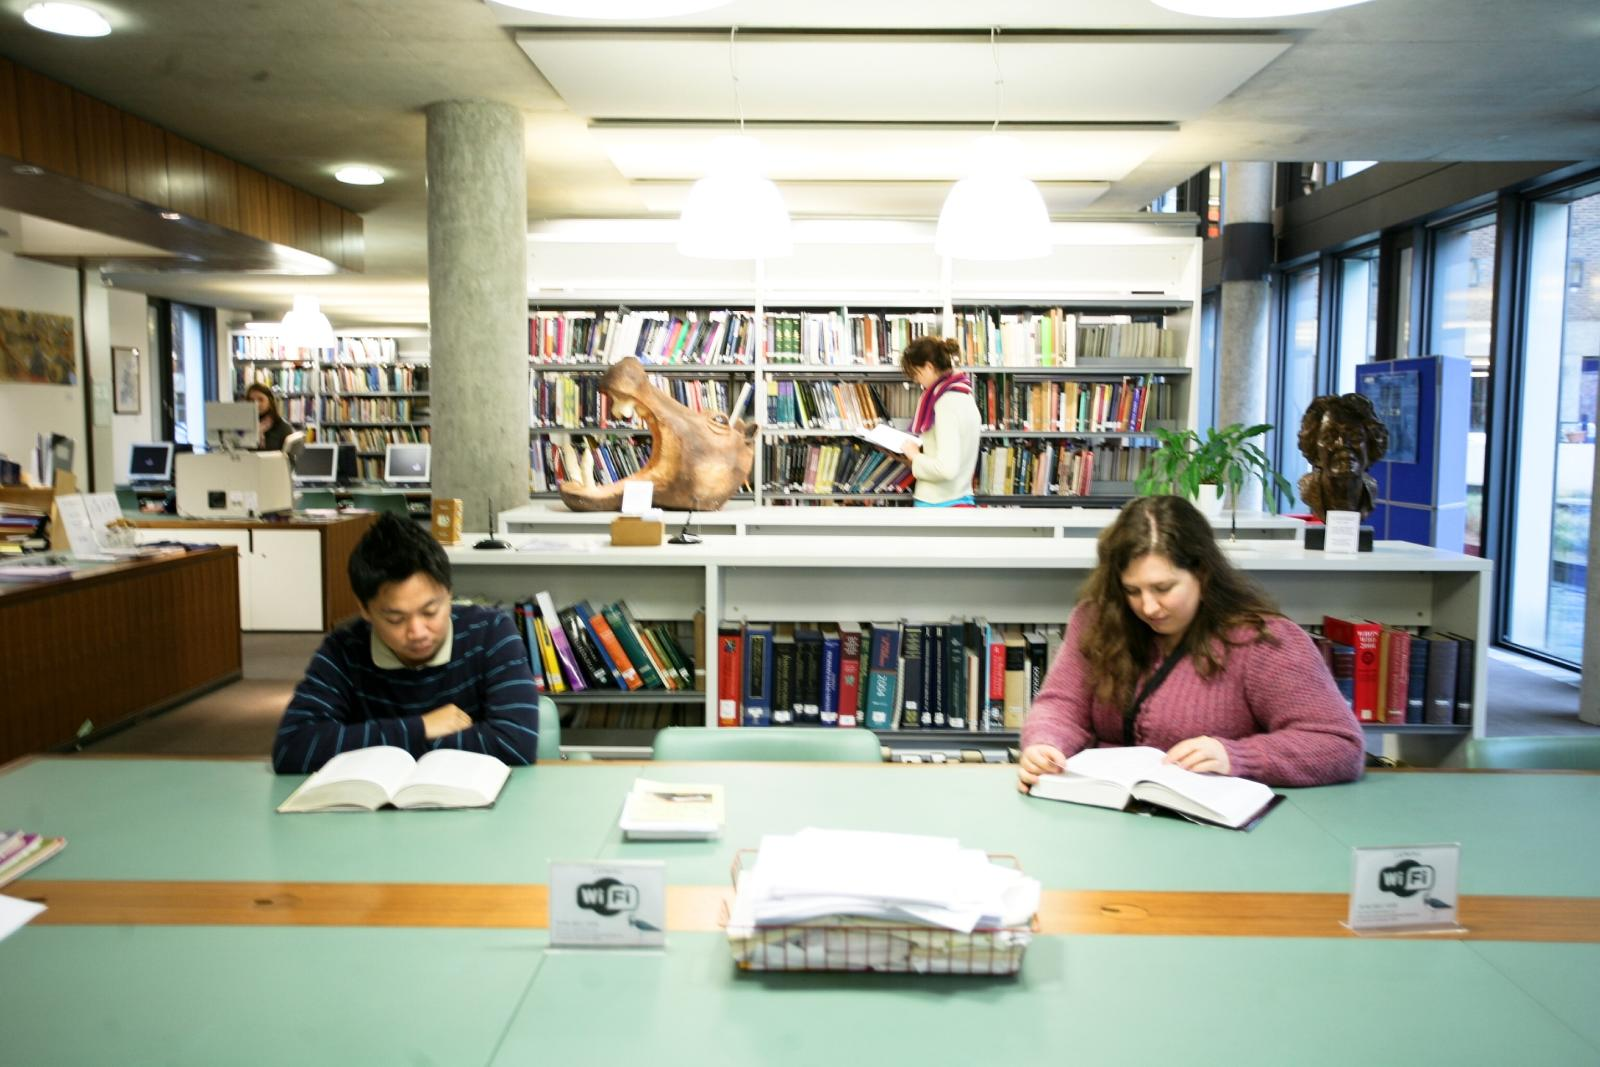 Students in the Criminology Library